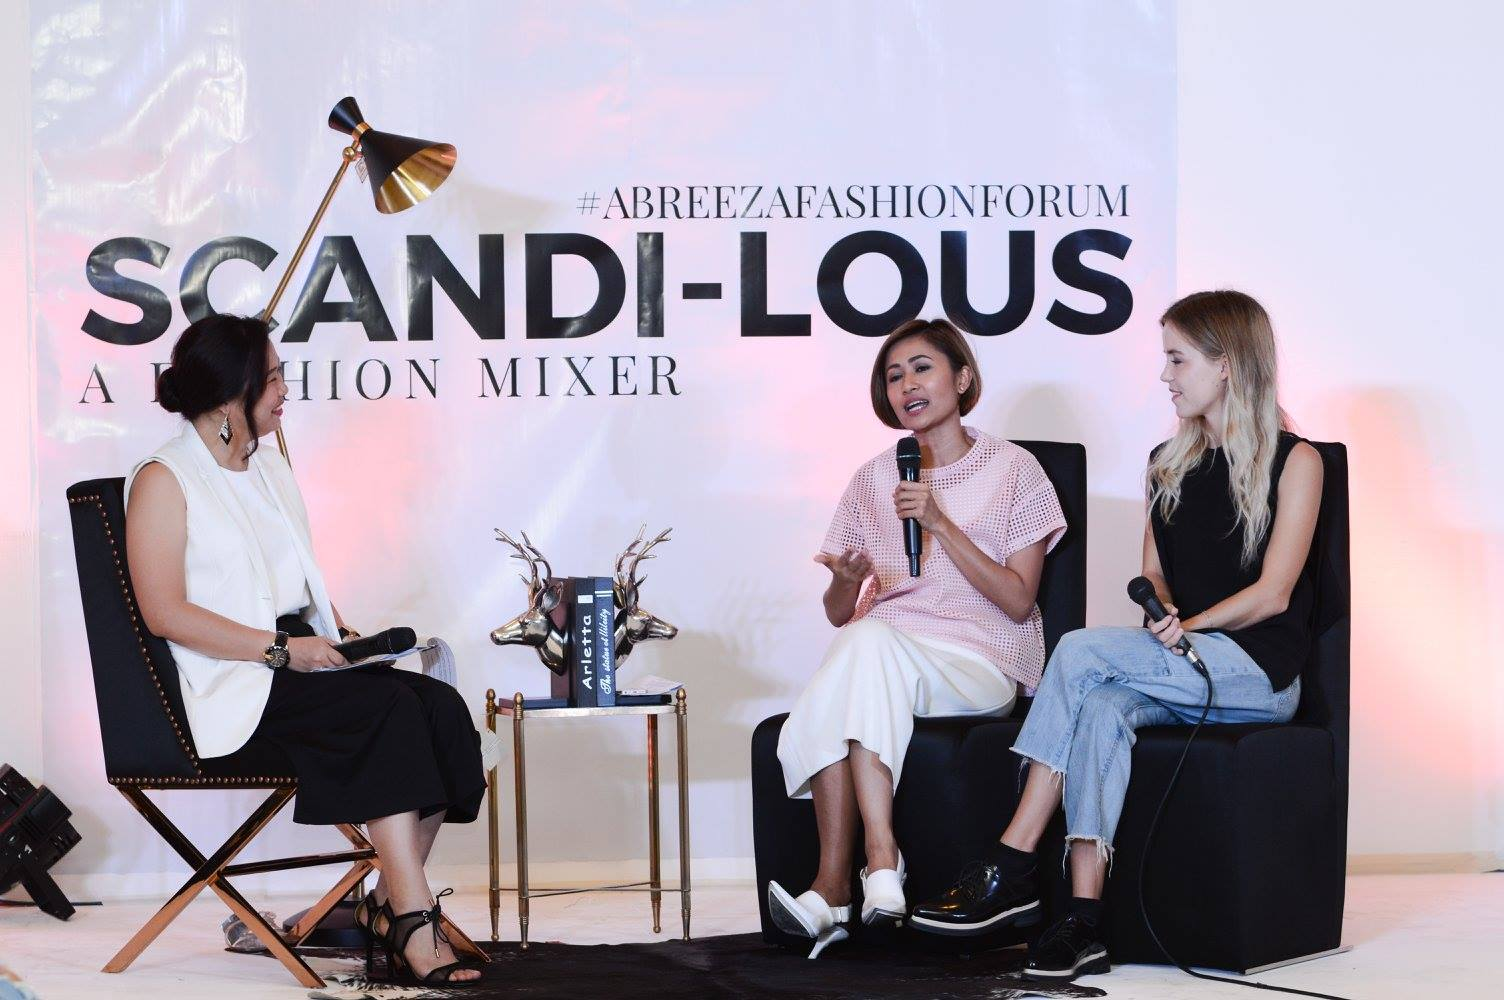 Abreeza Fashion Forum: Scandi-Lous